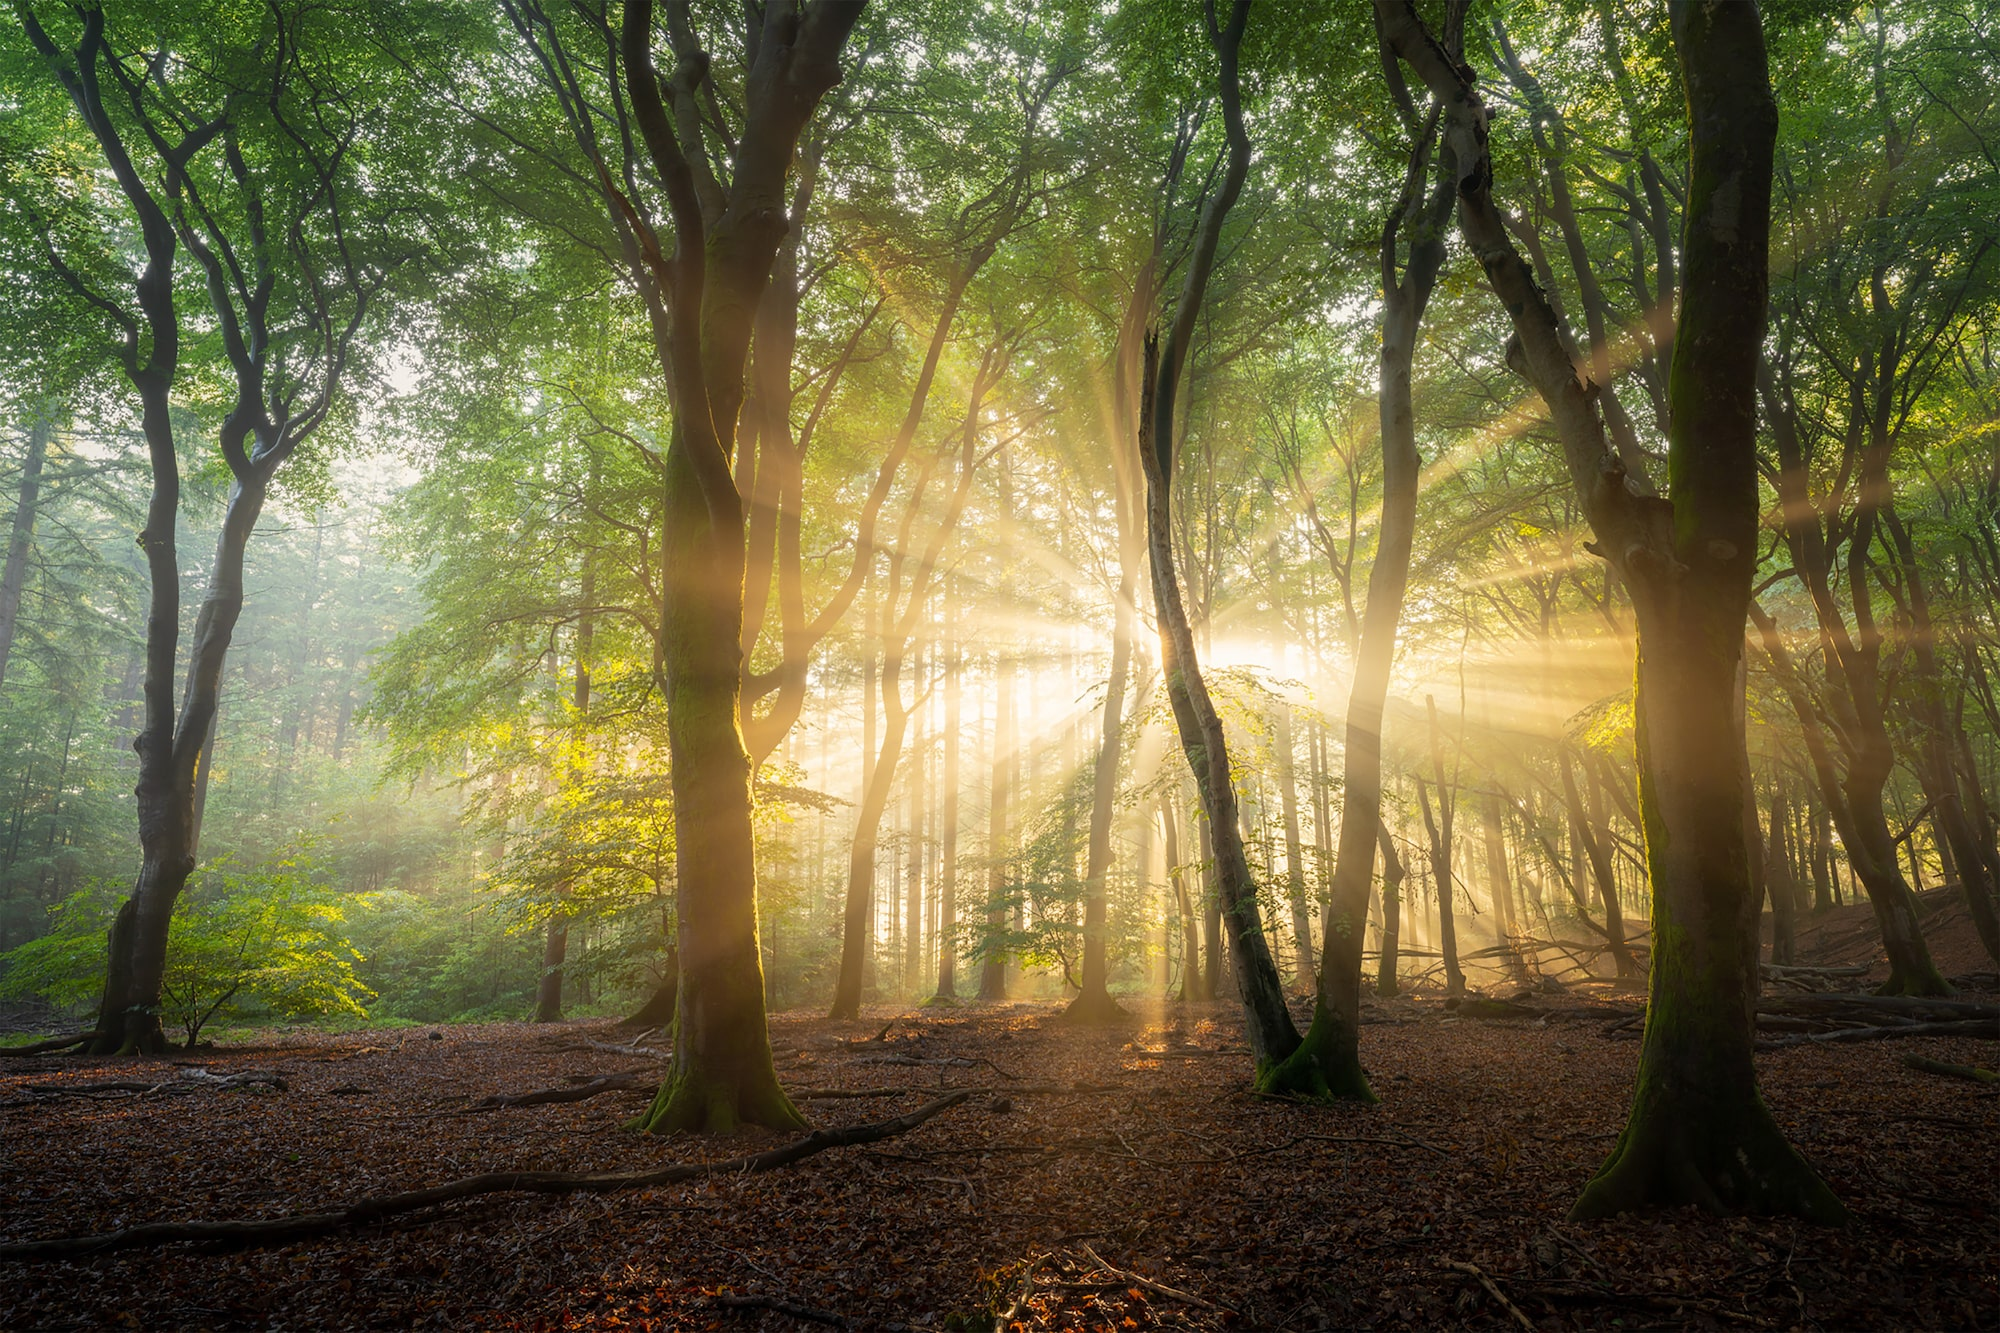 albert dros sony alpha 7RM4 sunlight breaking through trees in a forest in the netherlands